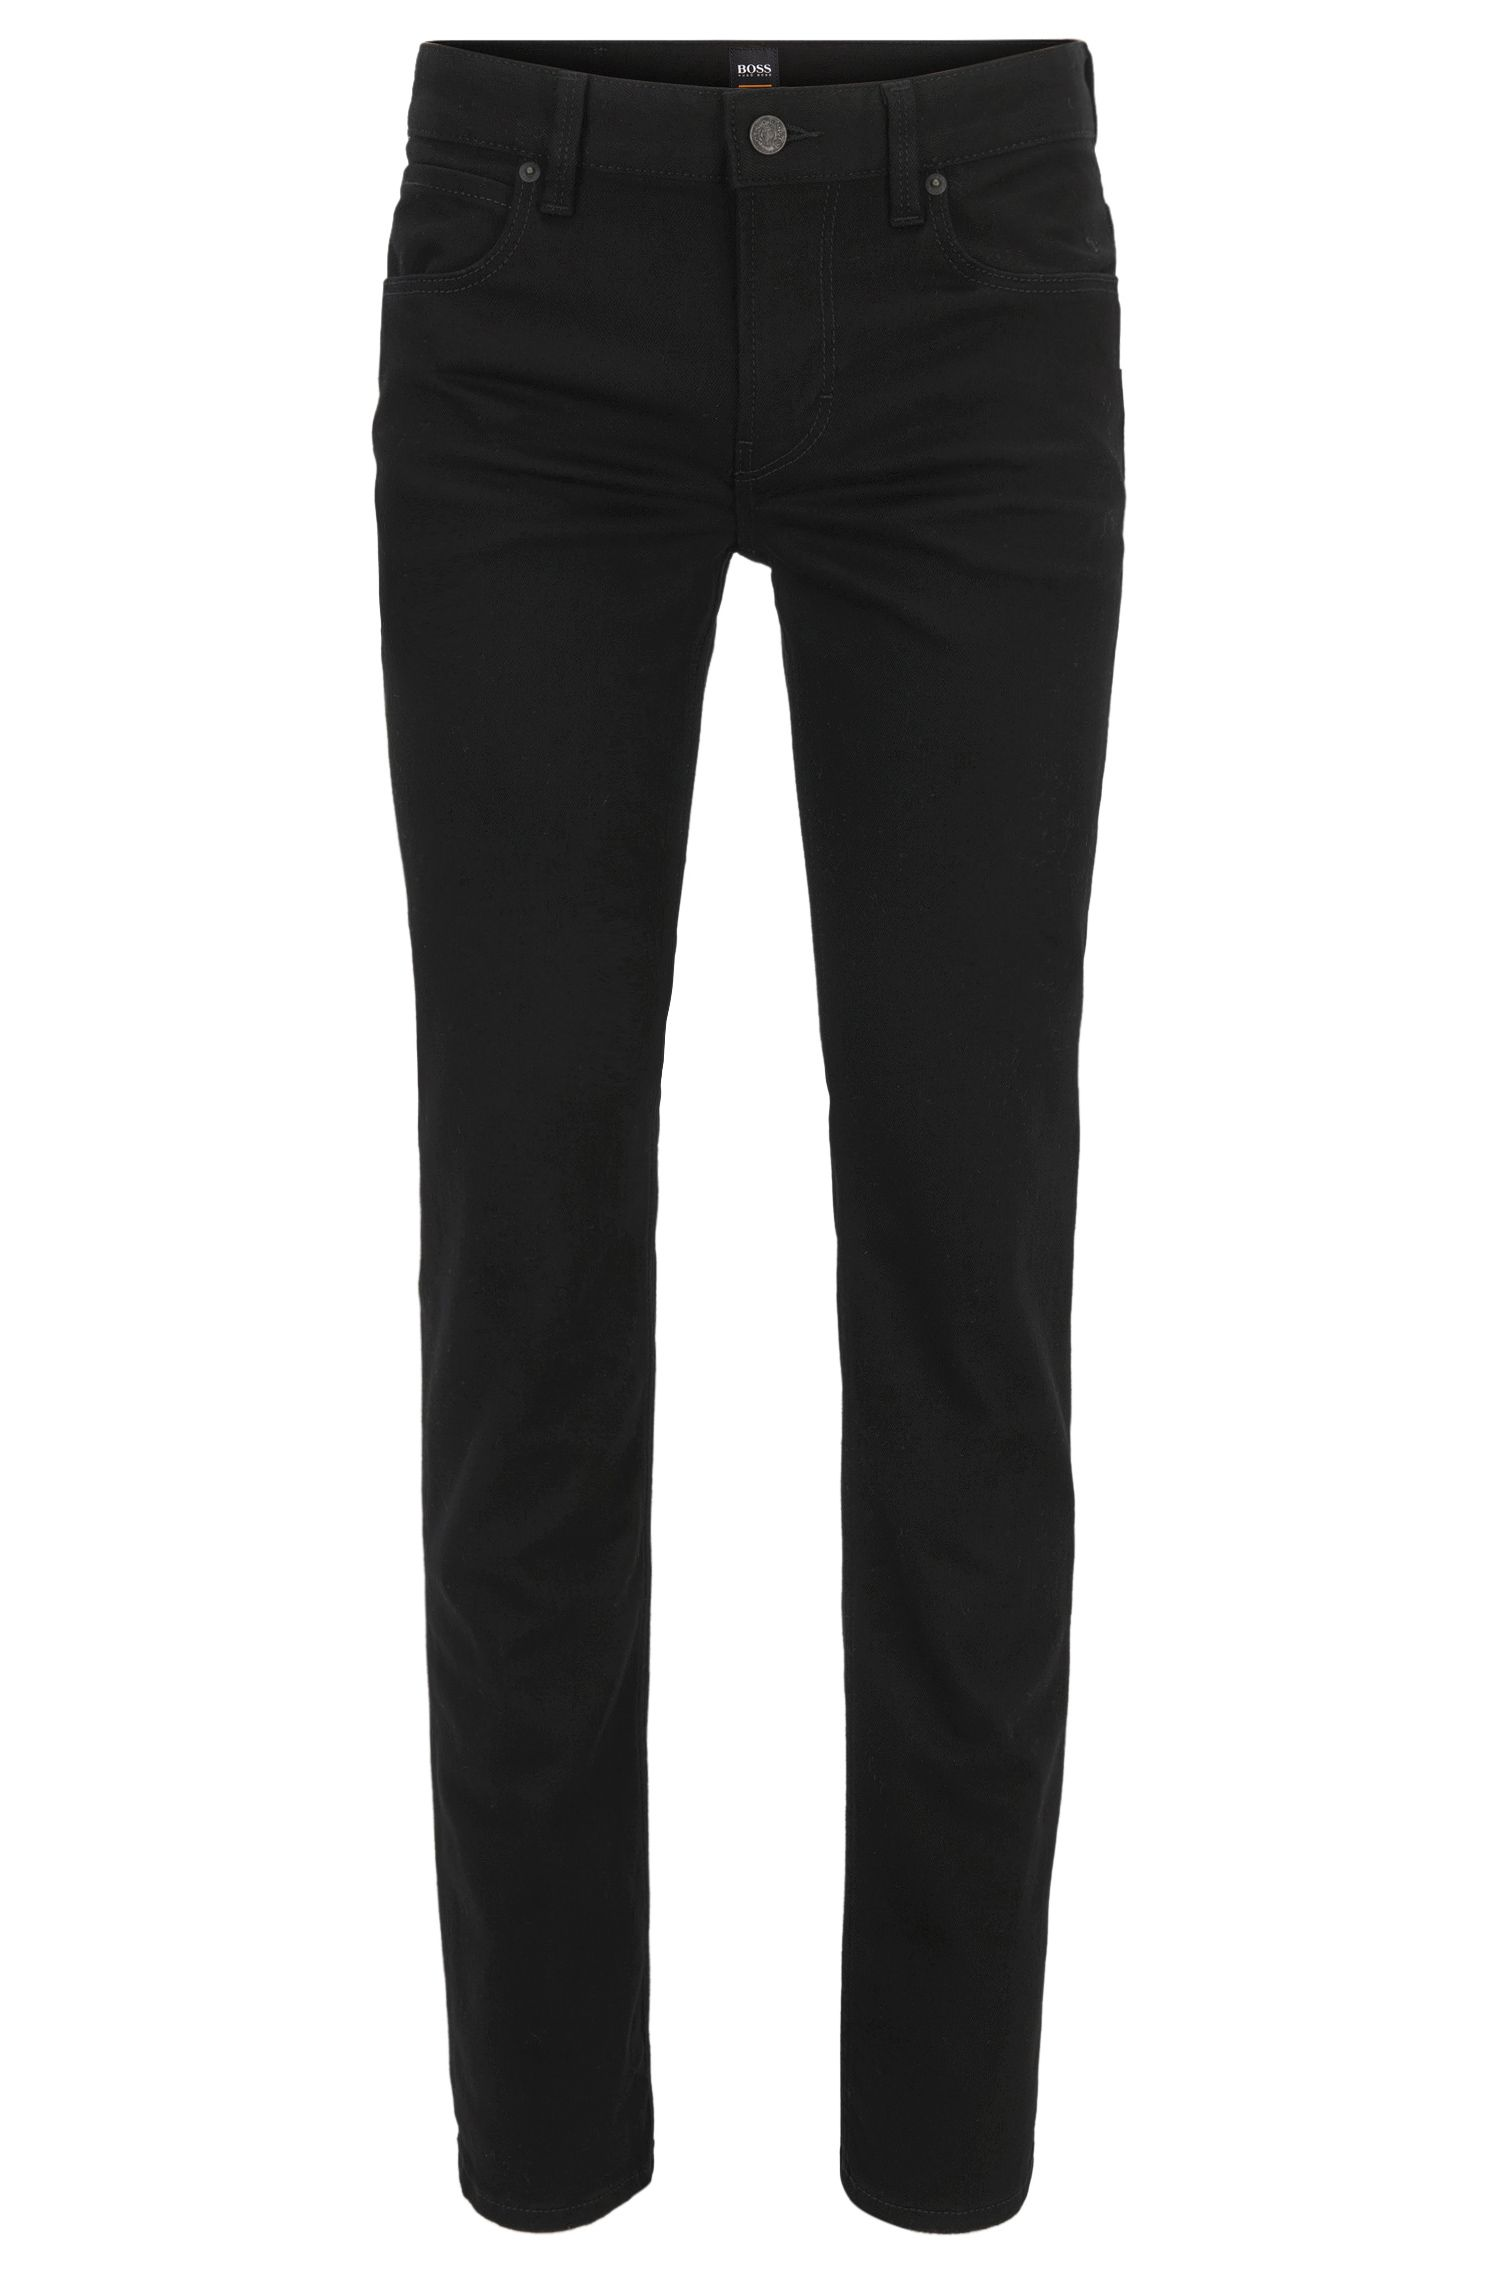 Jeans Slim Fit en denim noir Stay Black